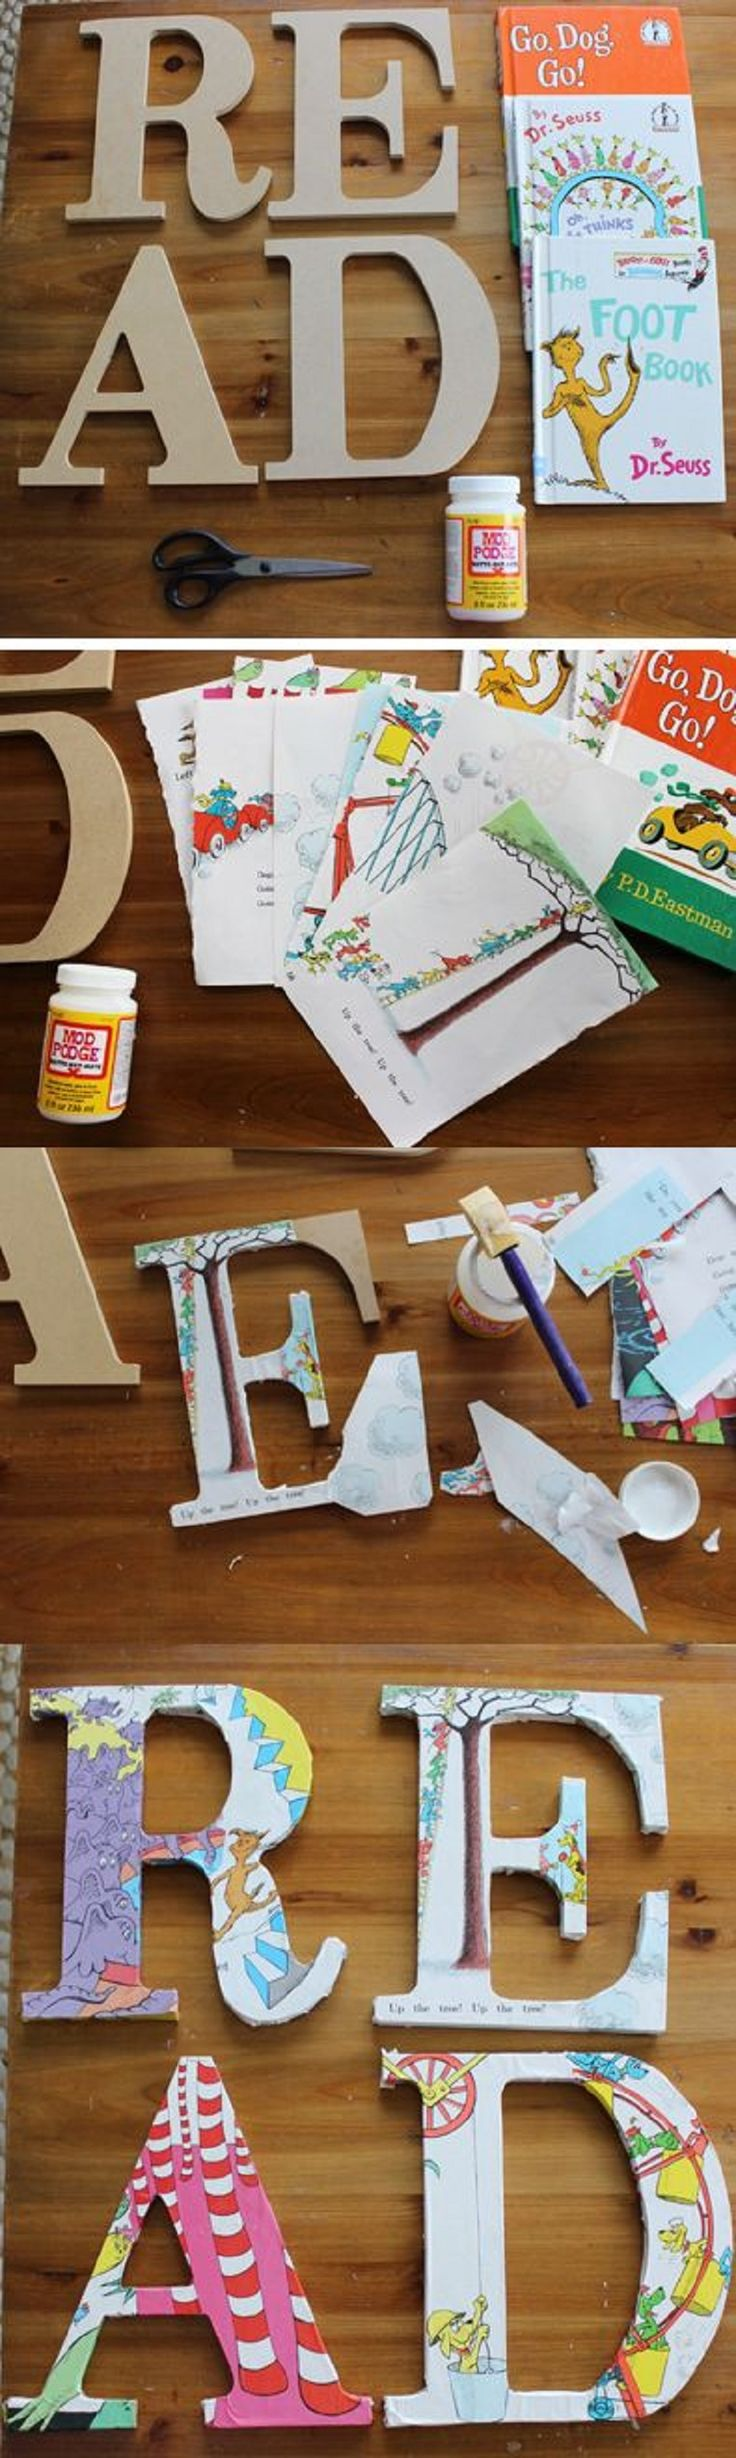 15 Awe-Inspiring DIY Home Projects with Letters | GleamItUp